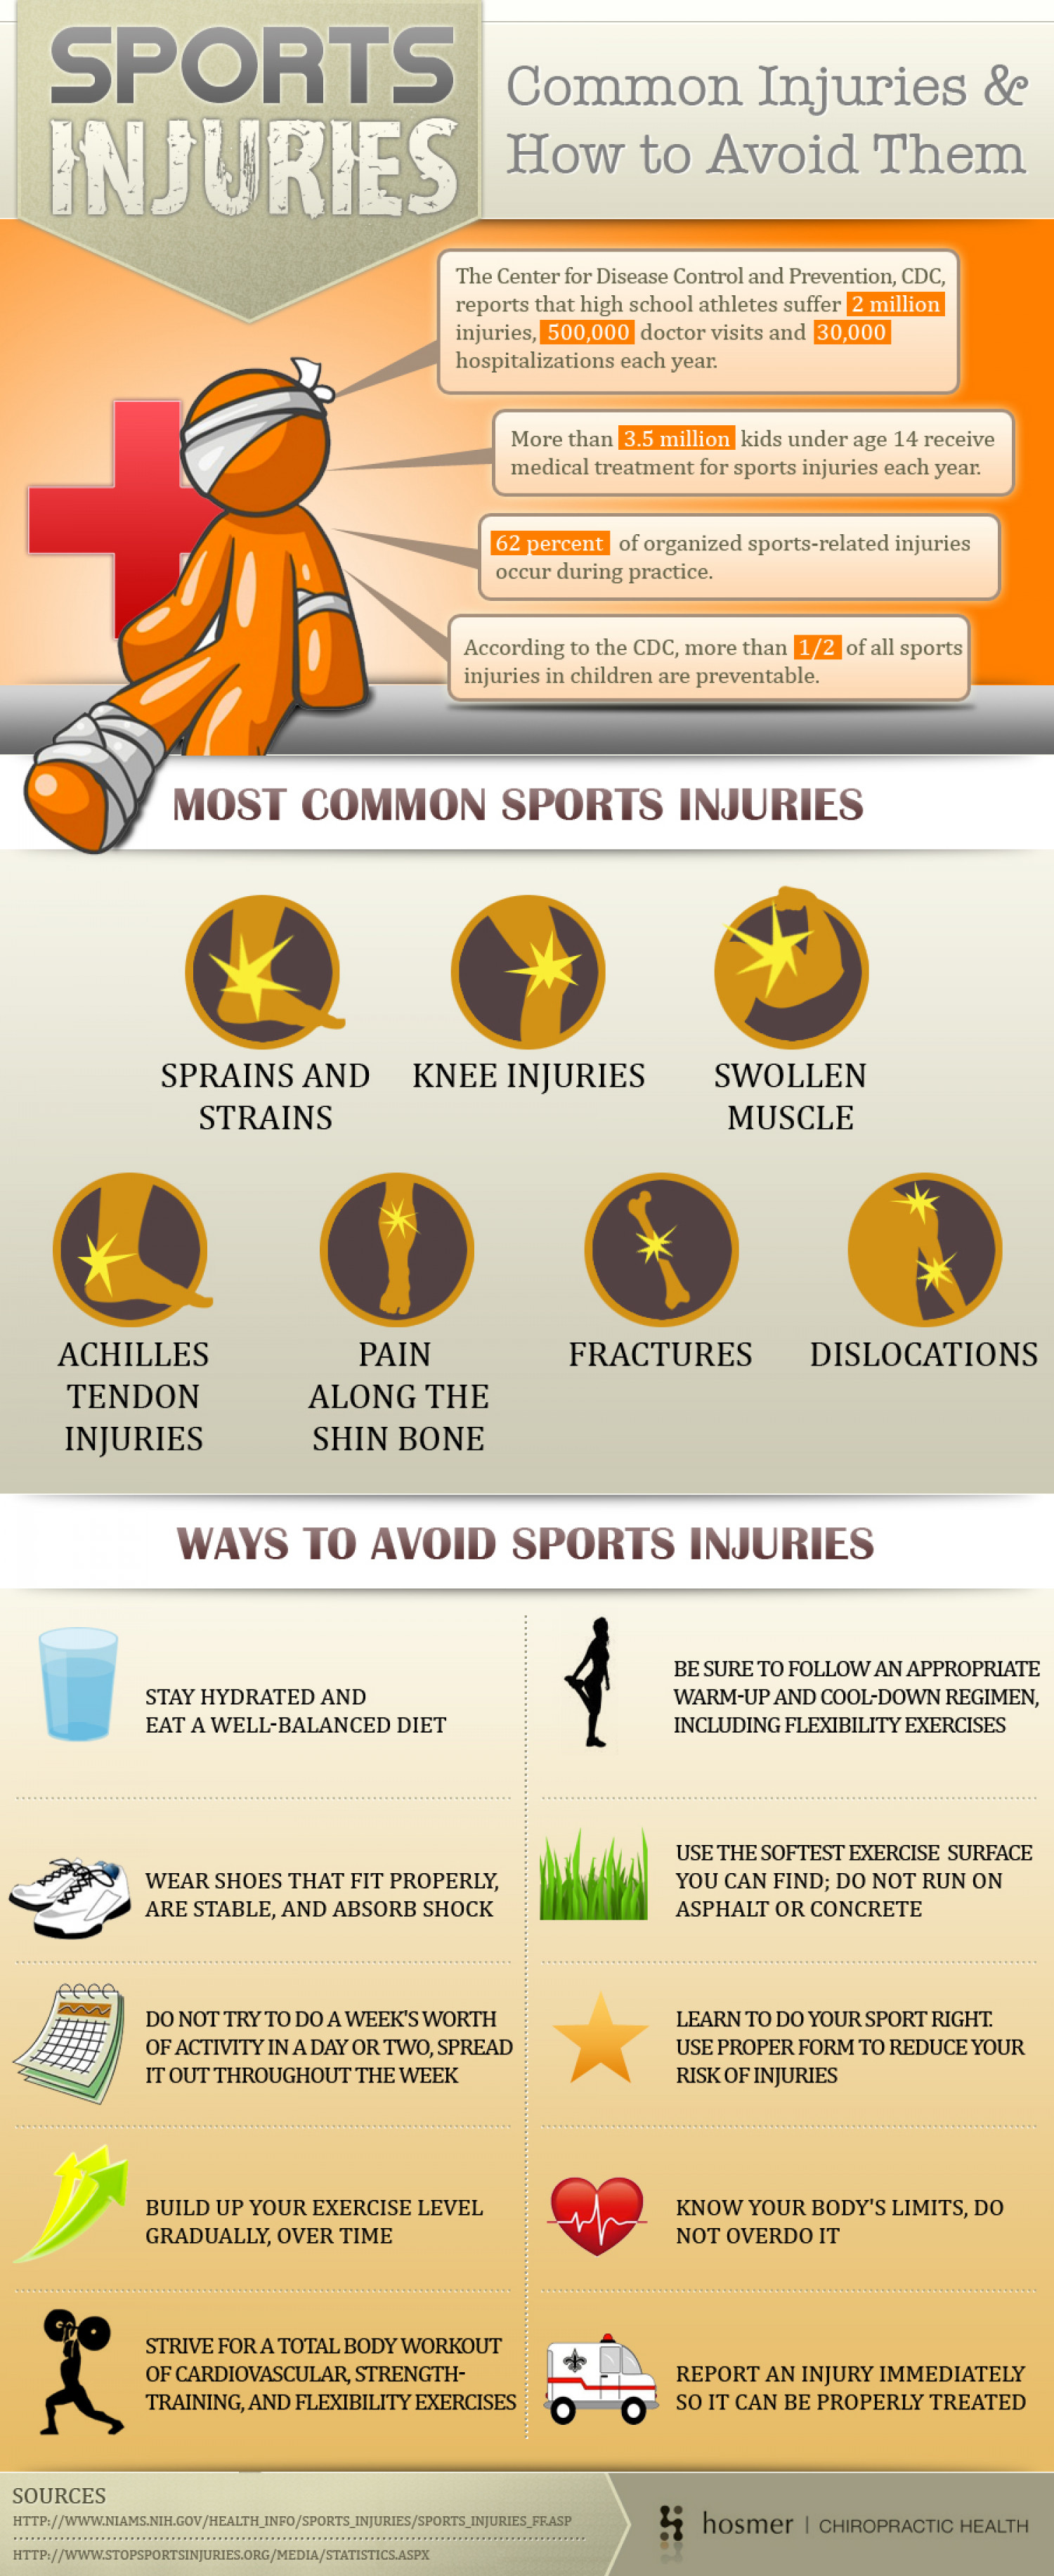 Sports Injuries - Common Injuries & How to Avoid Them Infographic